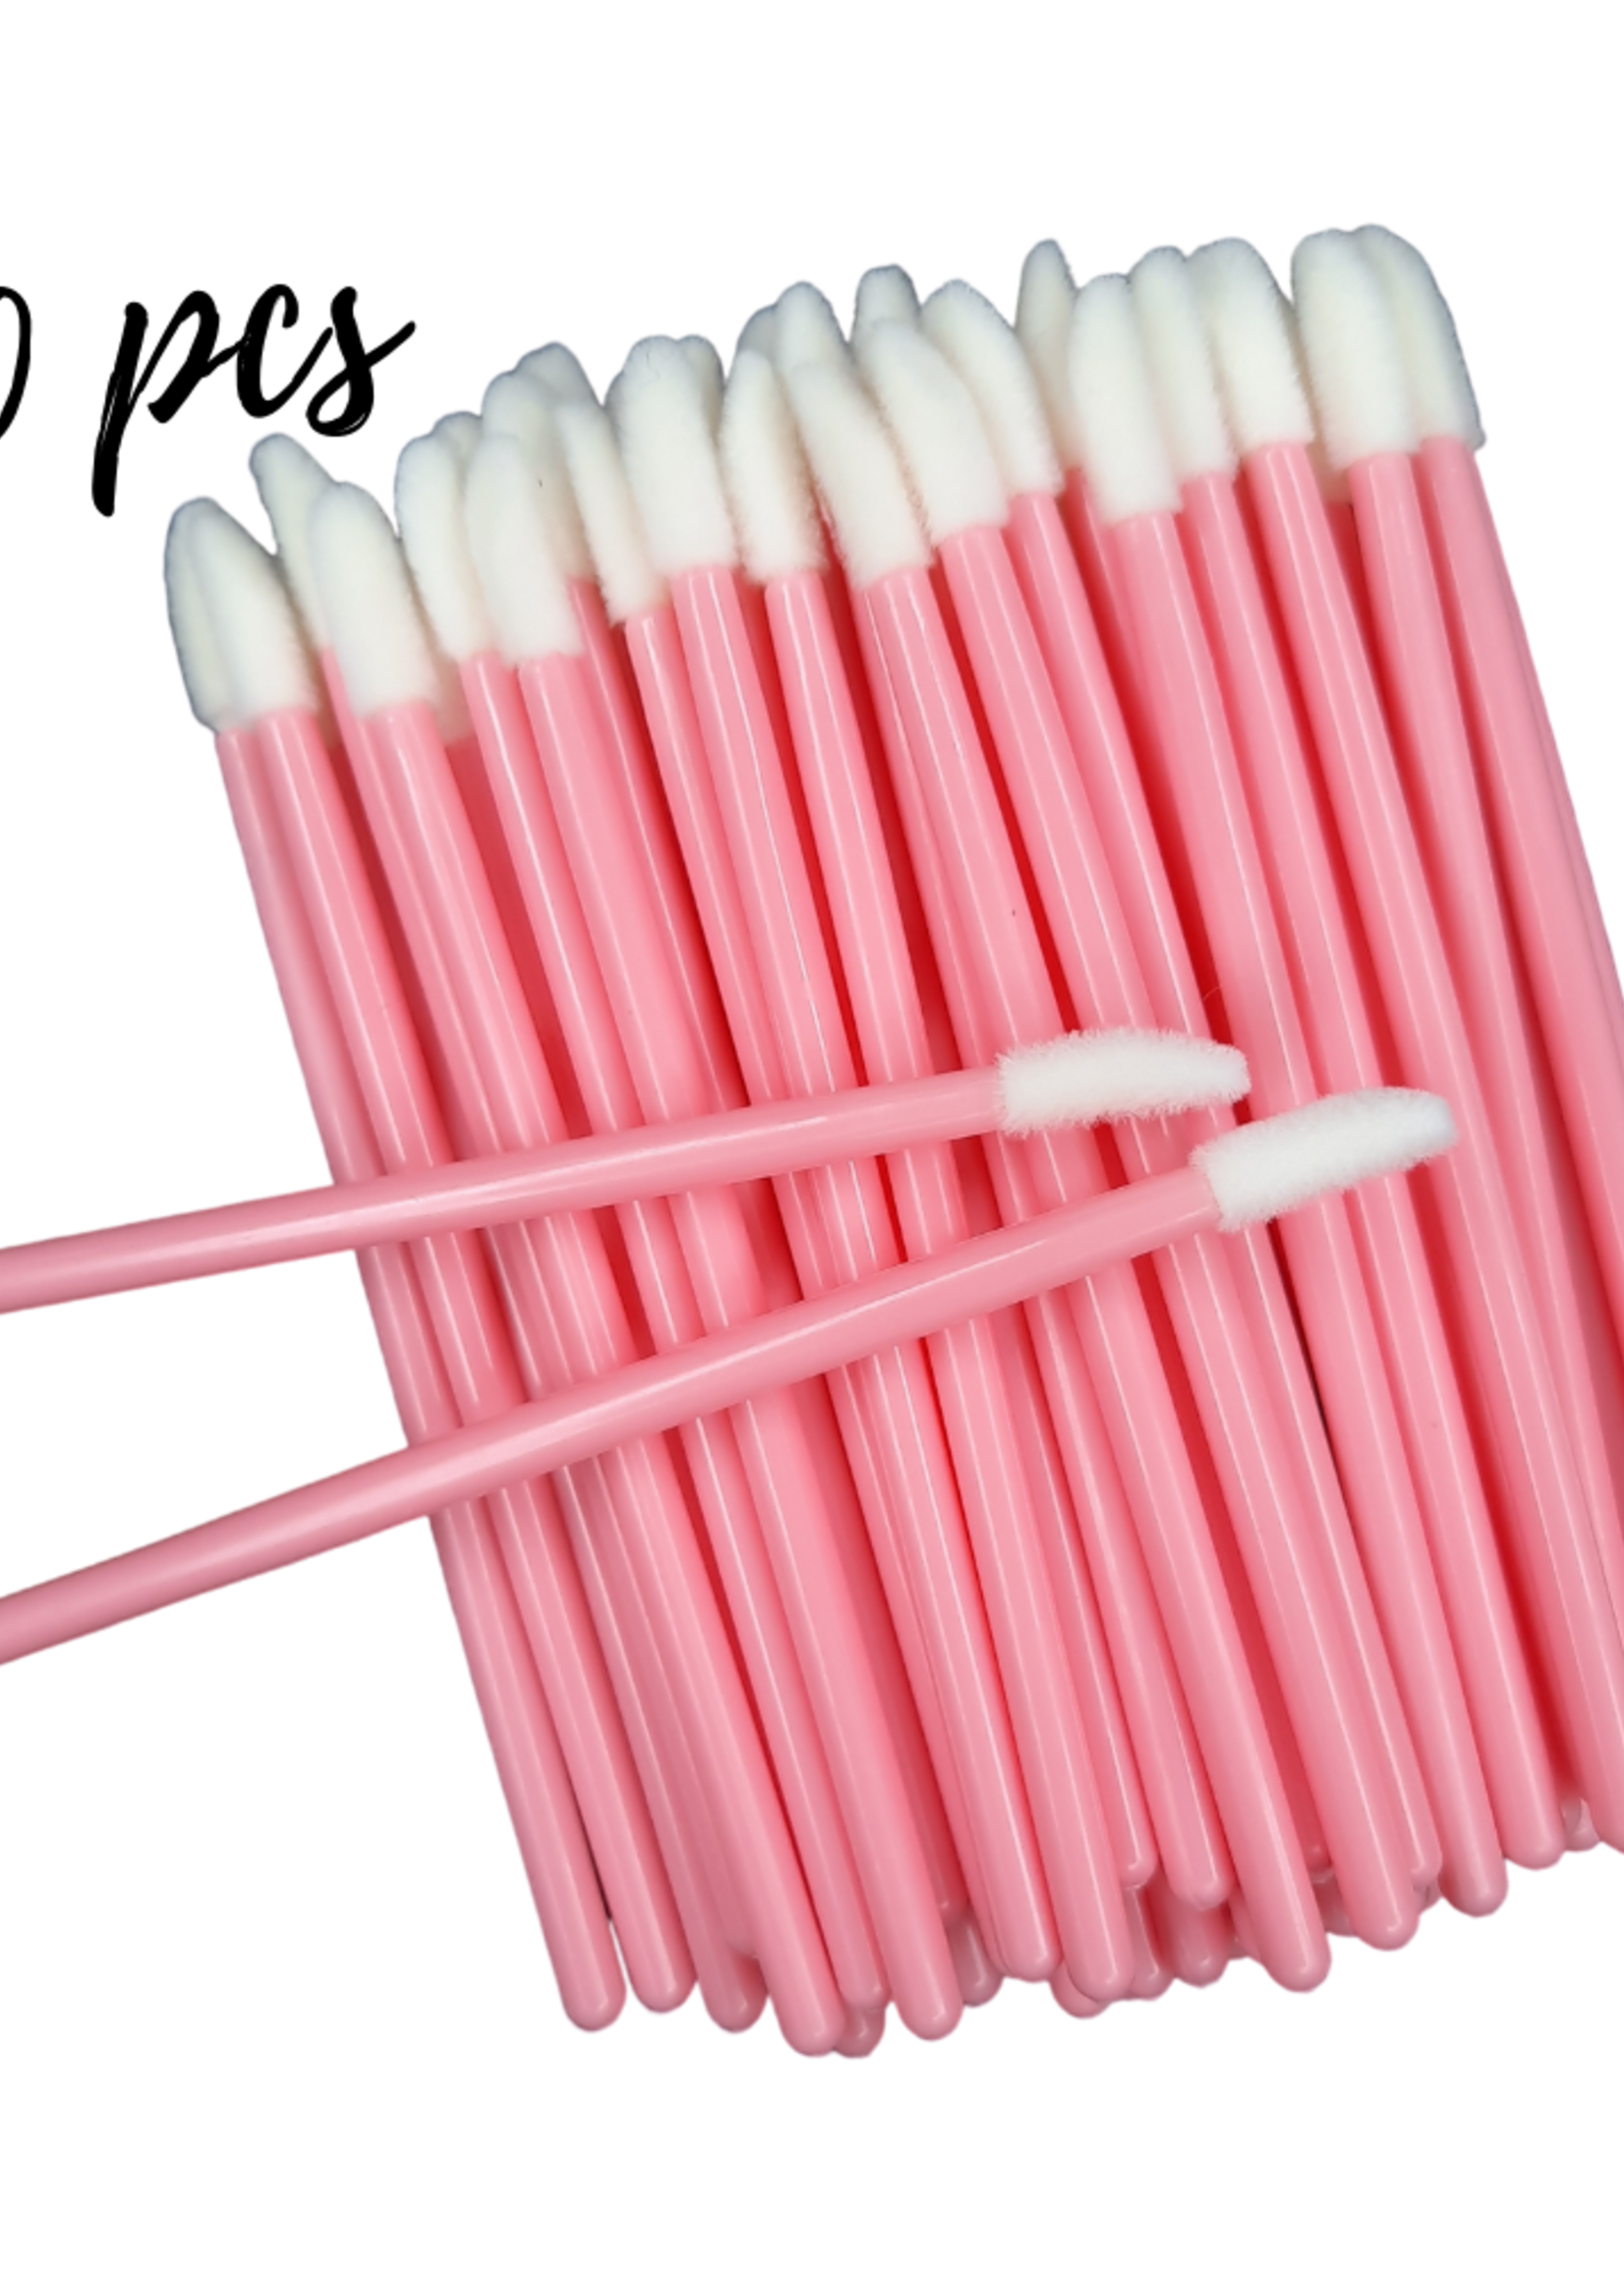 Lash Candies® Lipgloss Applicator Pink 50 Pieces